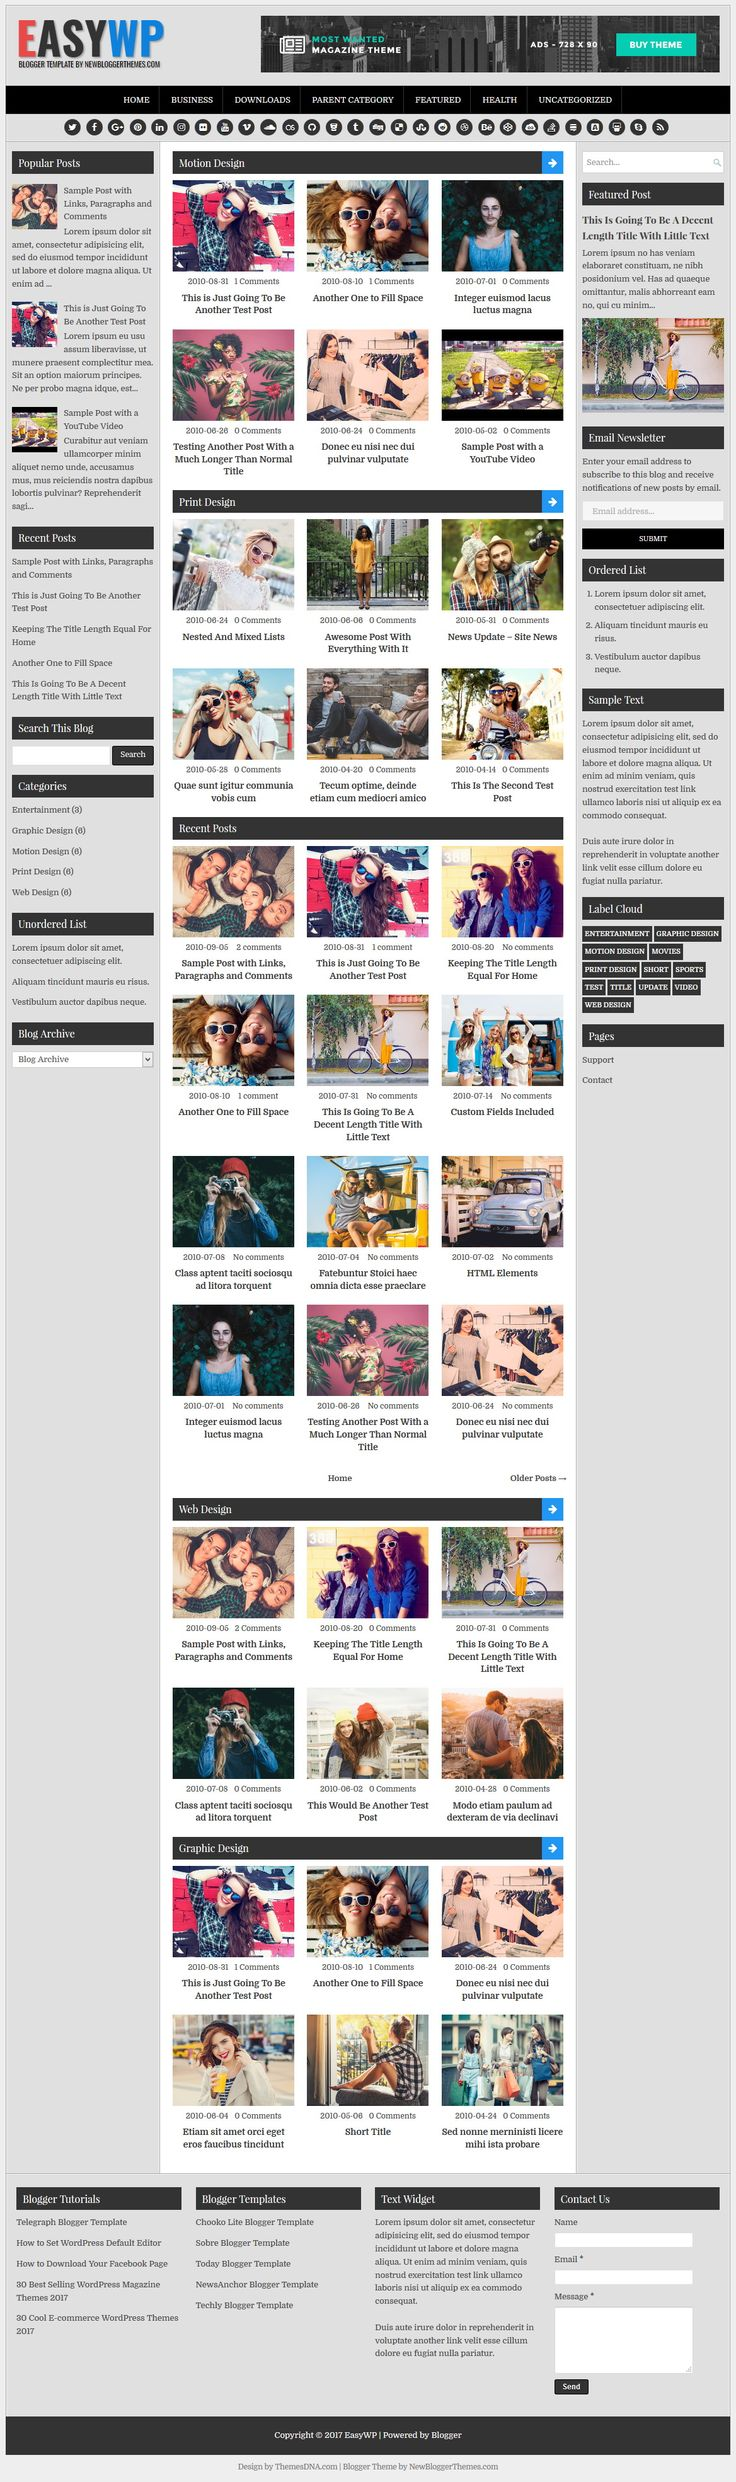 100 express template engines eur lex l 2015 085 full en eur express template engines 25 best template engine ideas on pinterest php template engine pronofoot35fo Choice Image